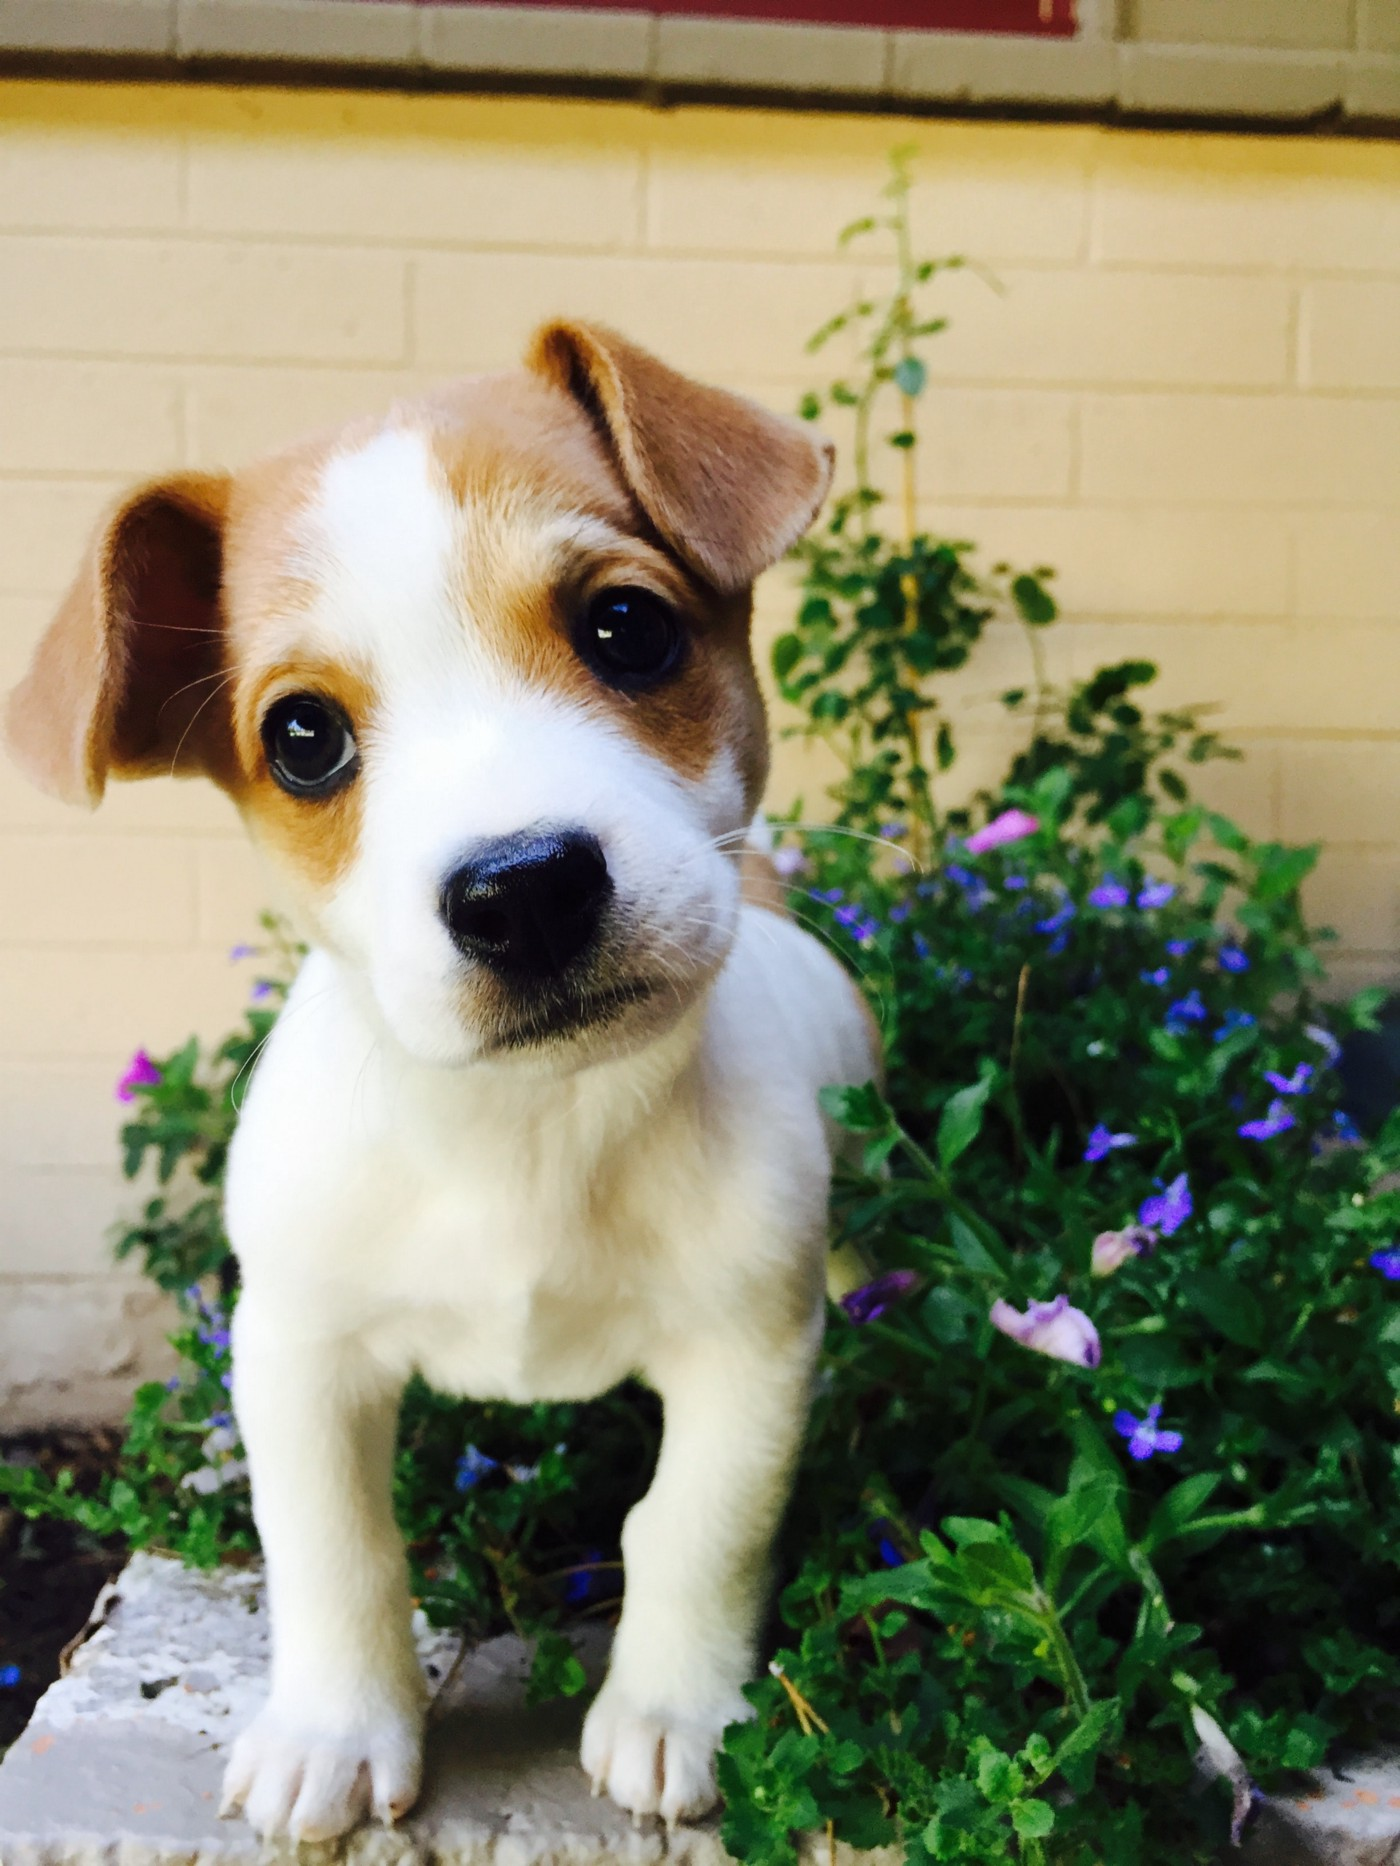 A white and brown short coated puppy (Jack Russel Terrier) looking at the camera.